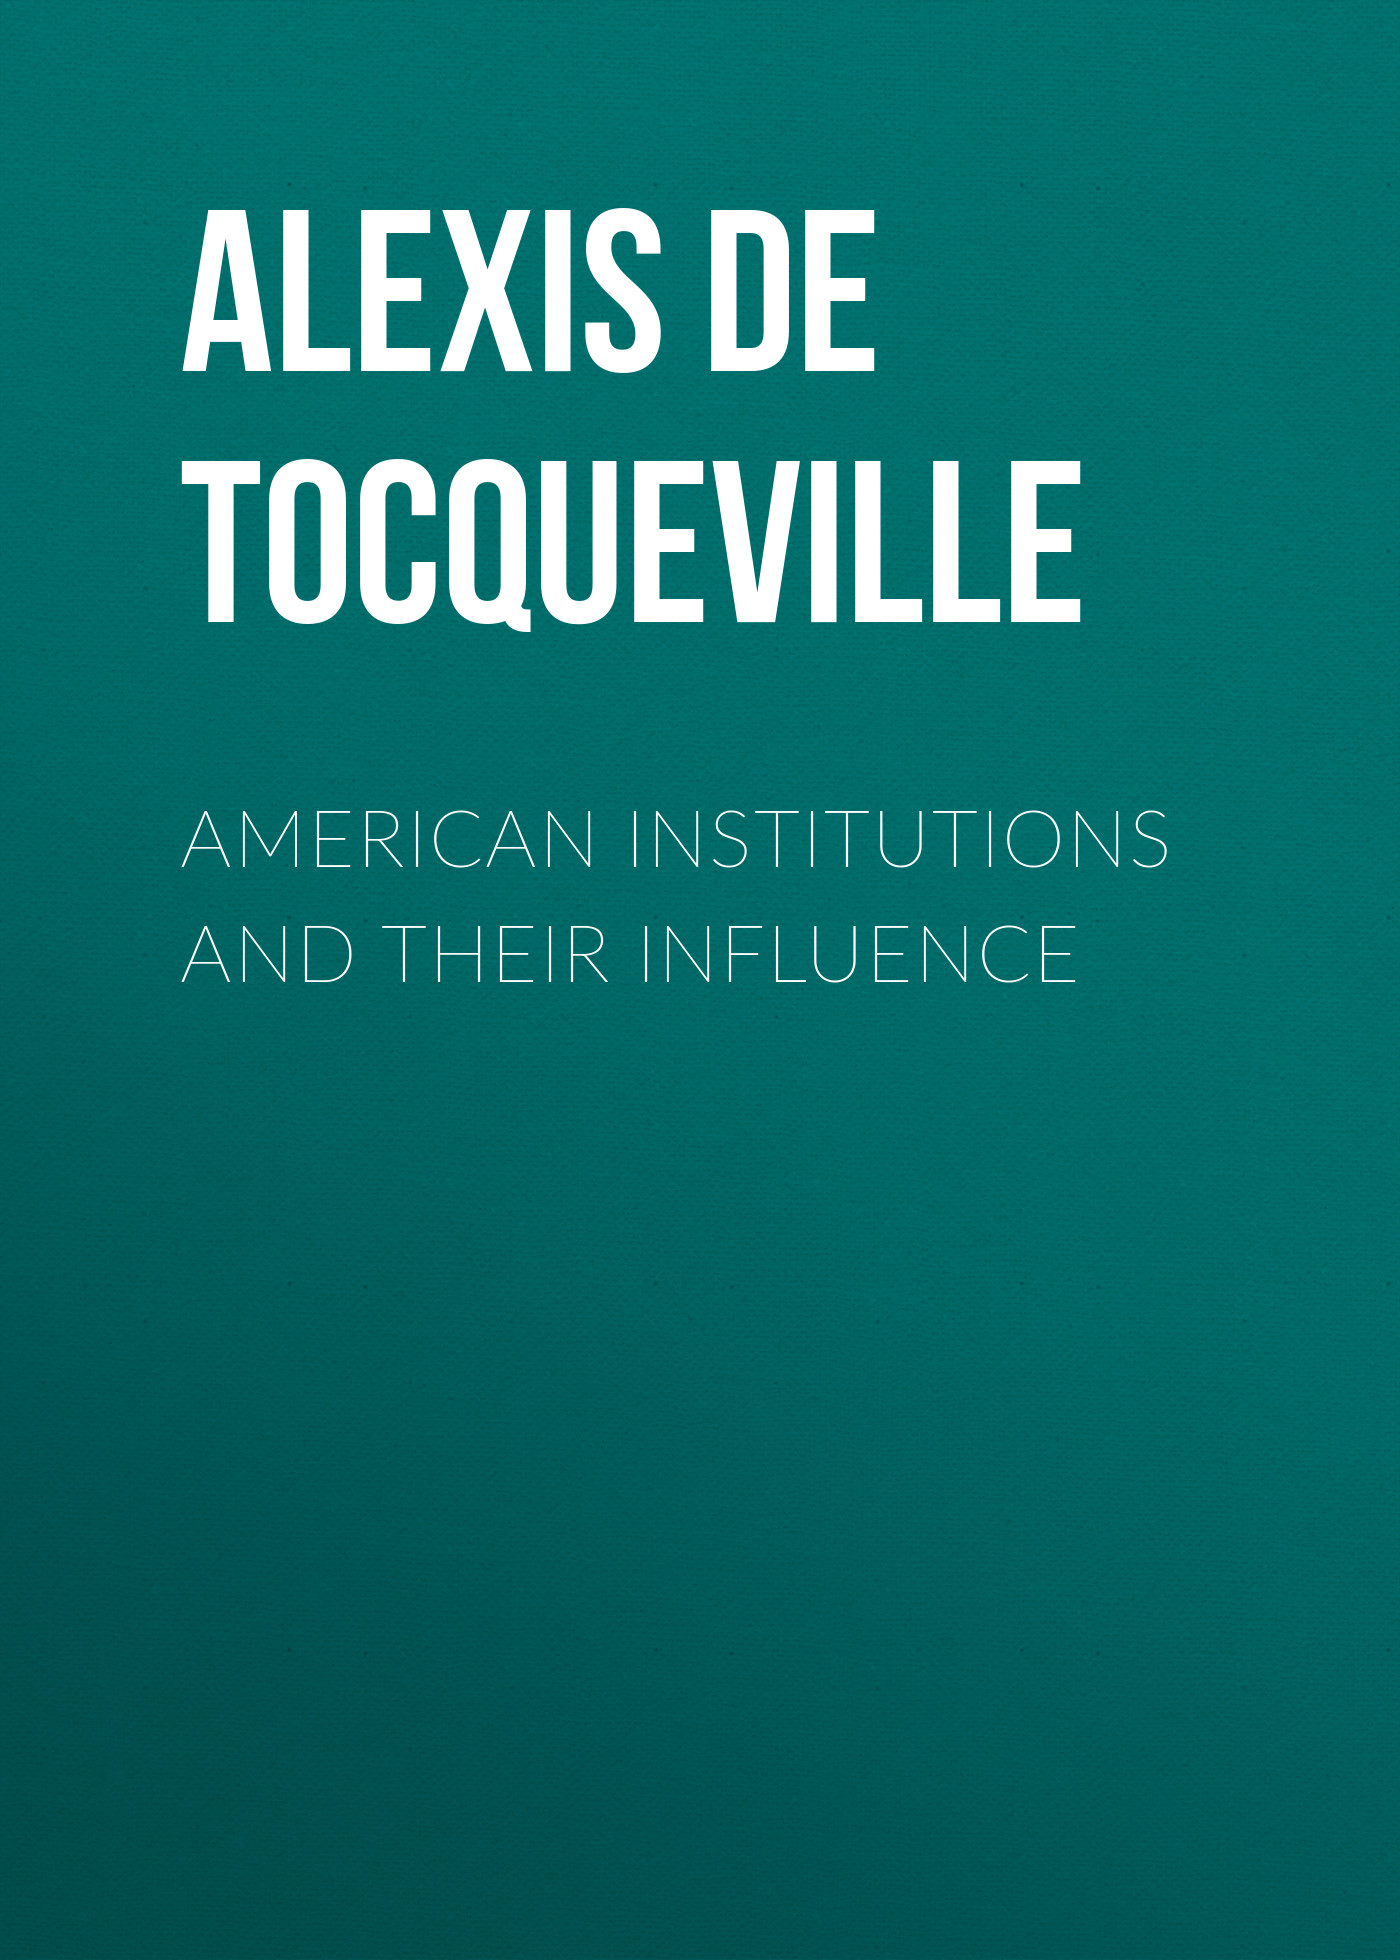 Alexis de Tocqueville American Institutions and Their Influence